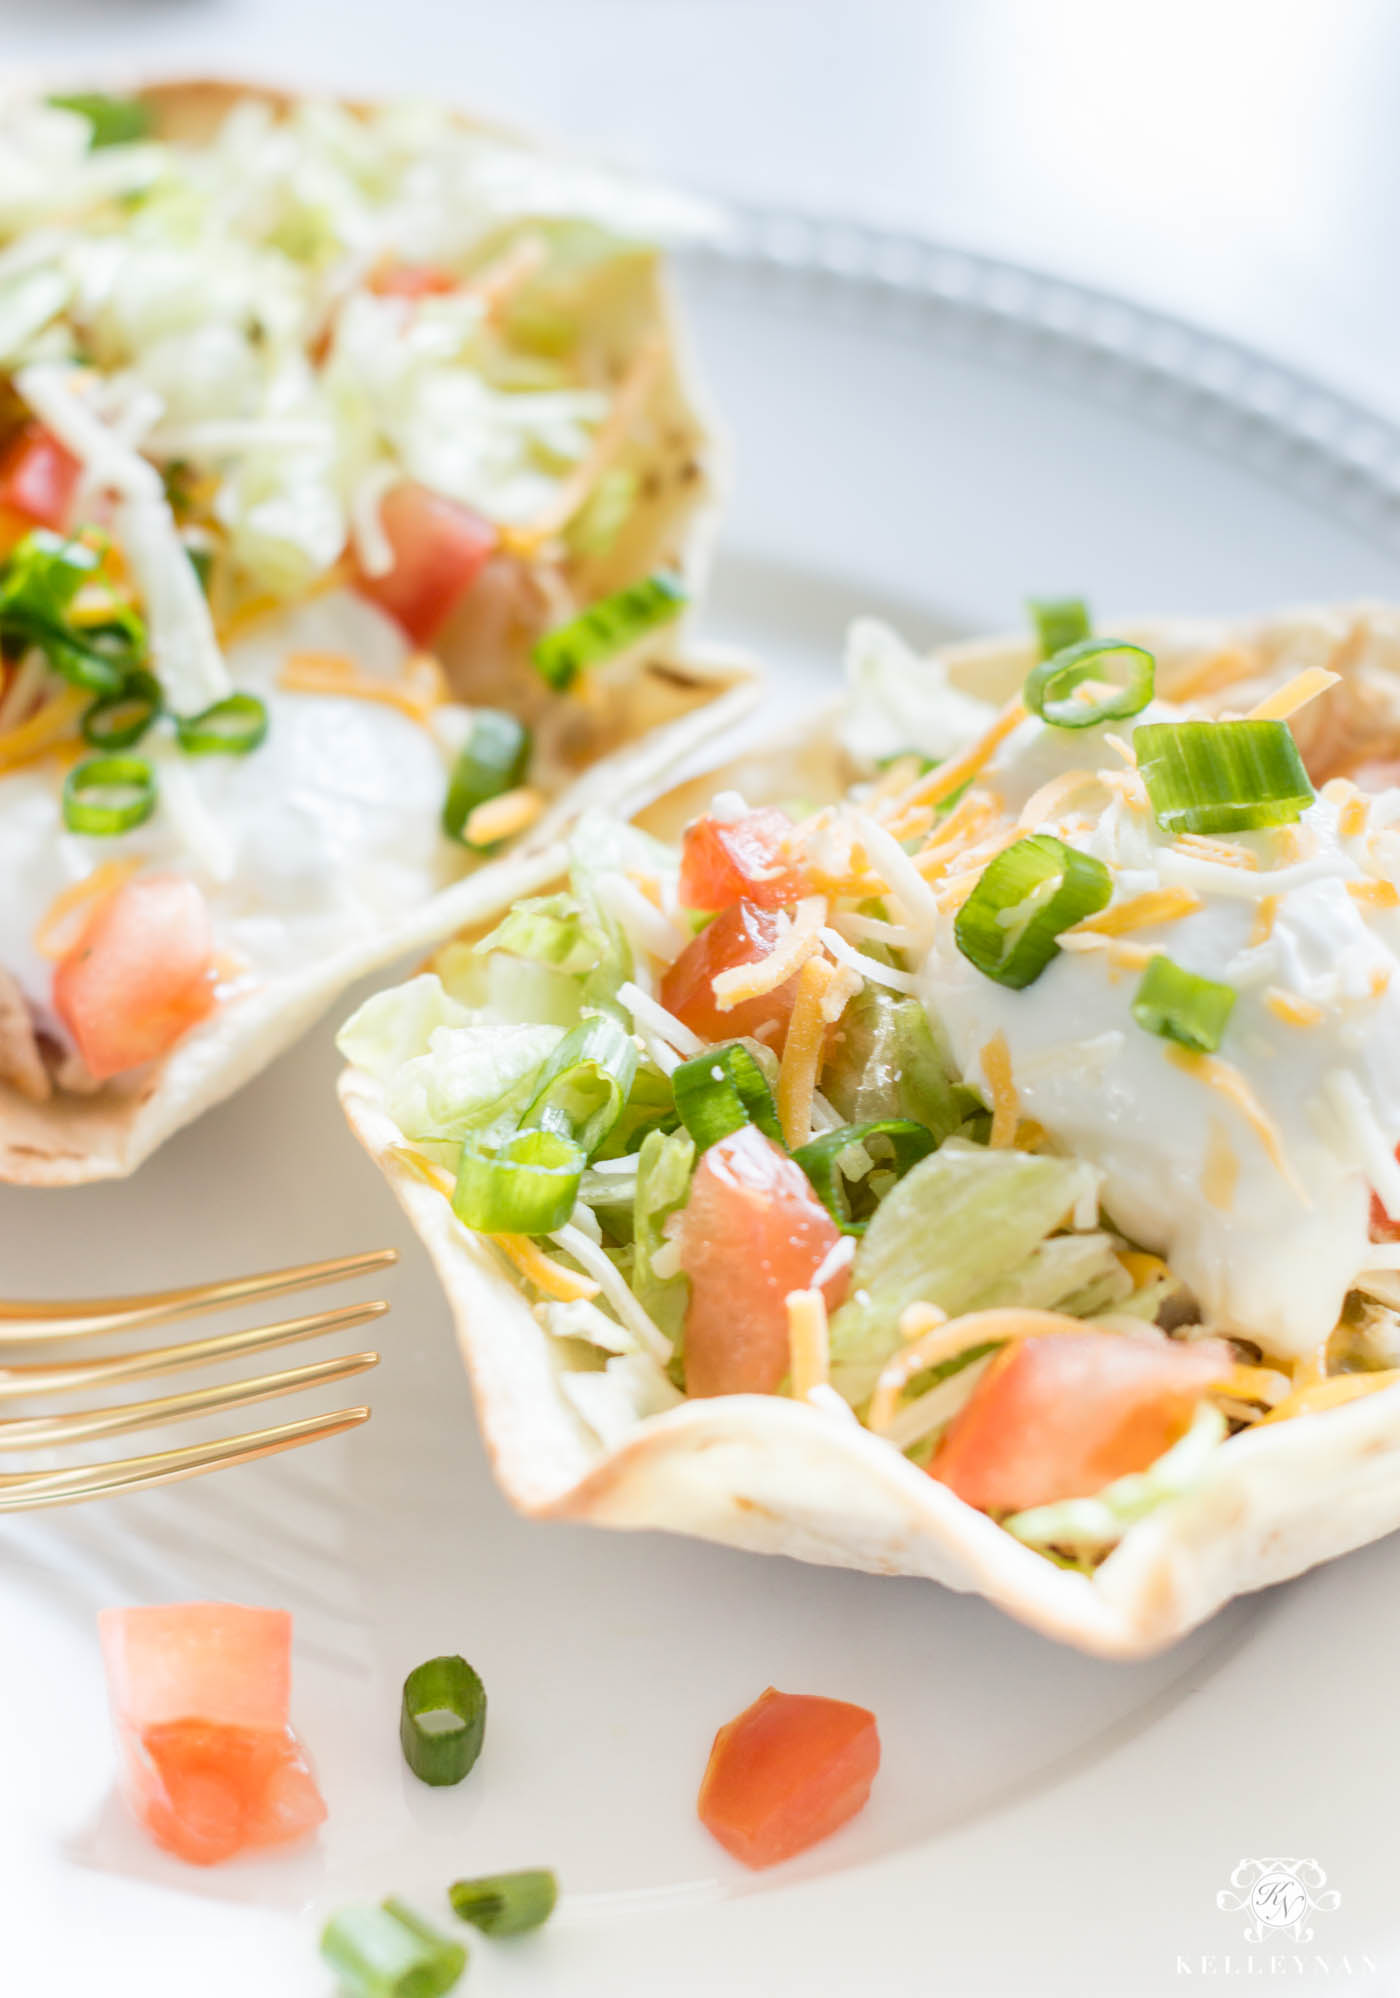 Mini Chicken Taco Salad Recipe for an easy weeknight dinner